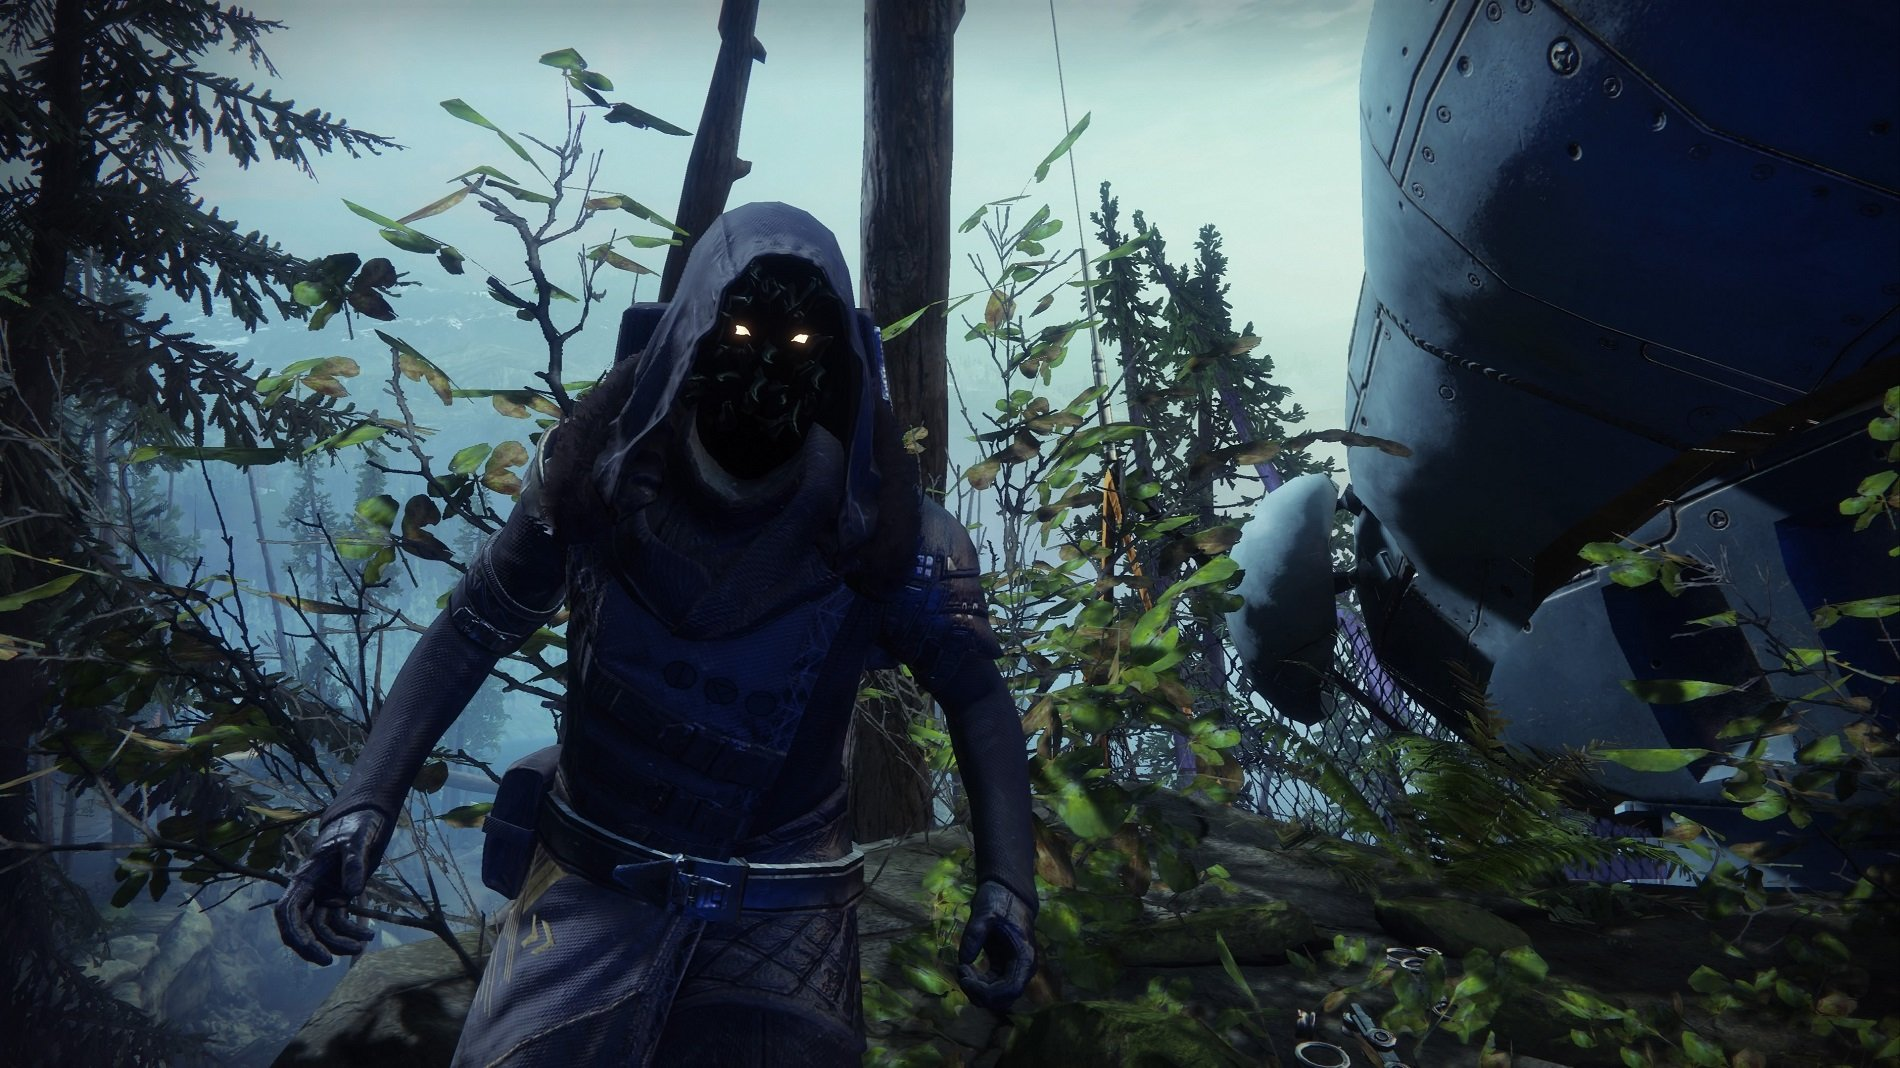 Where to find Xur in Destiny 2 - April 3, 2020